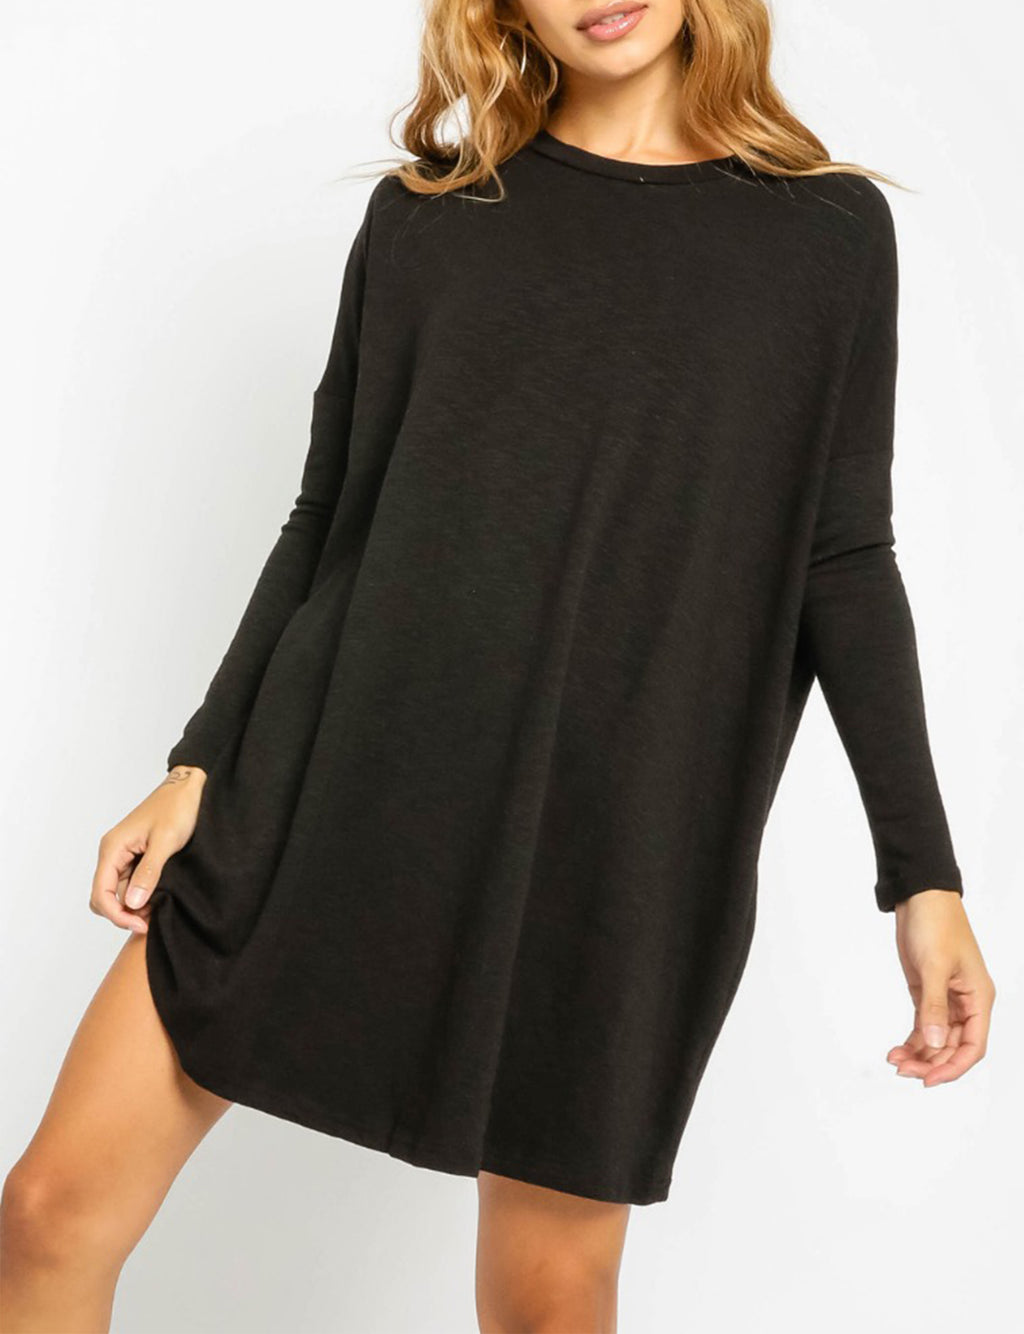 Long Sleeve Tee Shirt Dress in Black